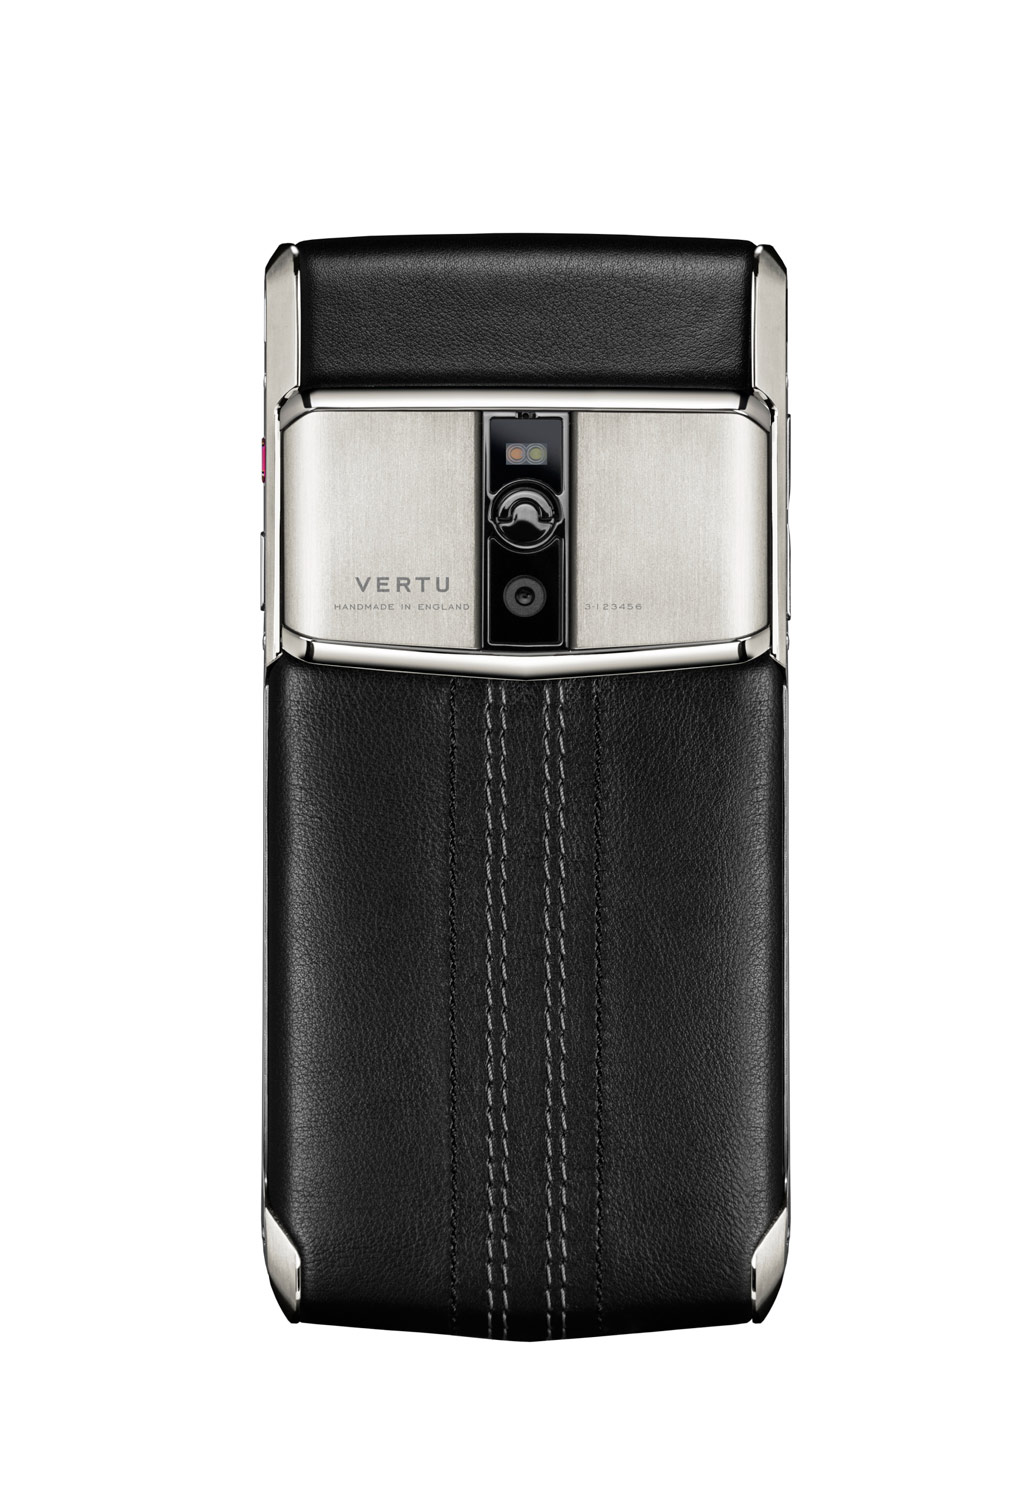 The Vertu Signature Touch - Your Trusted Luxury Confidant 5